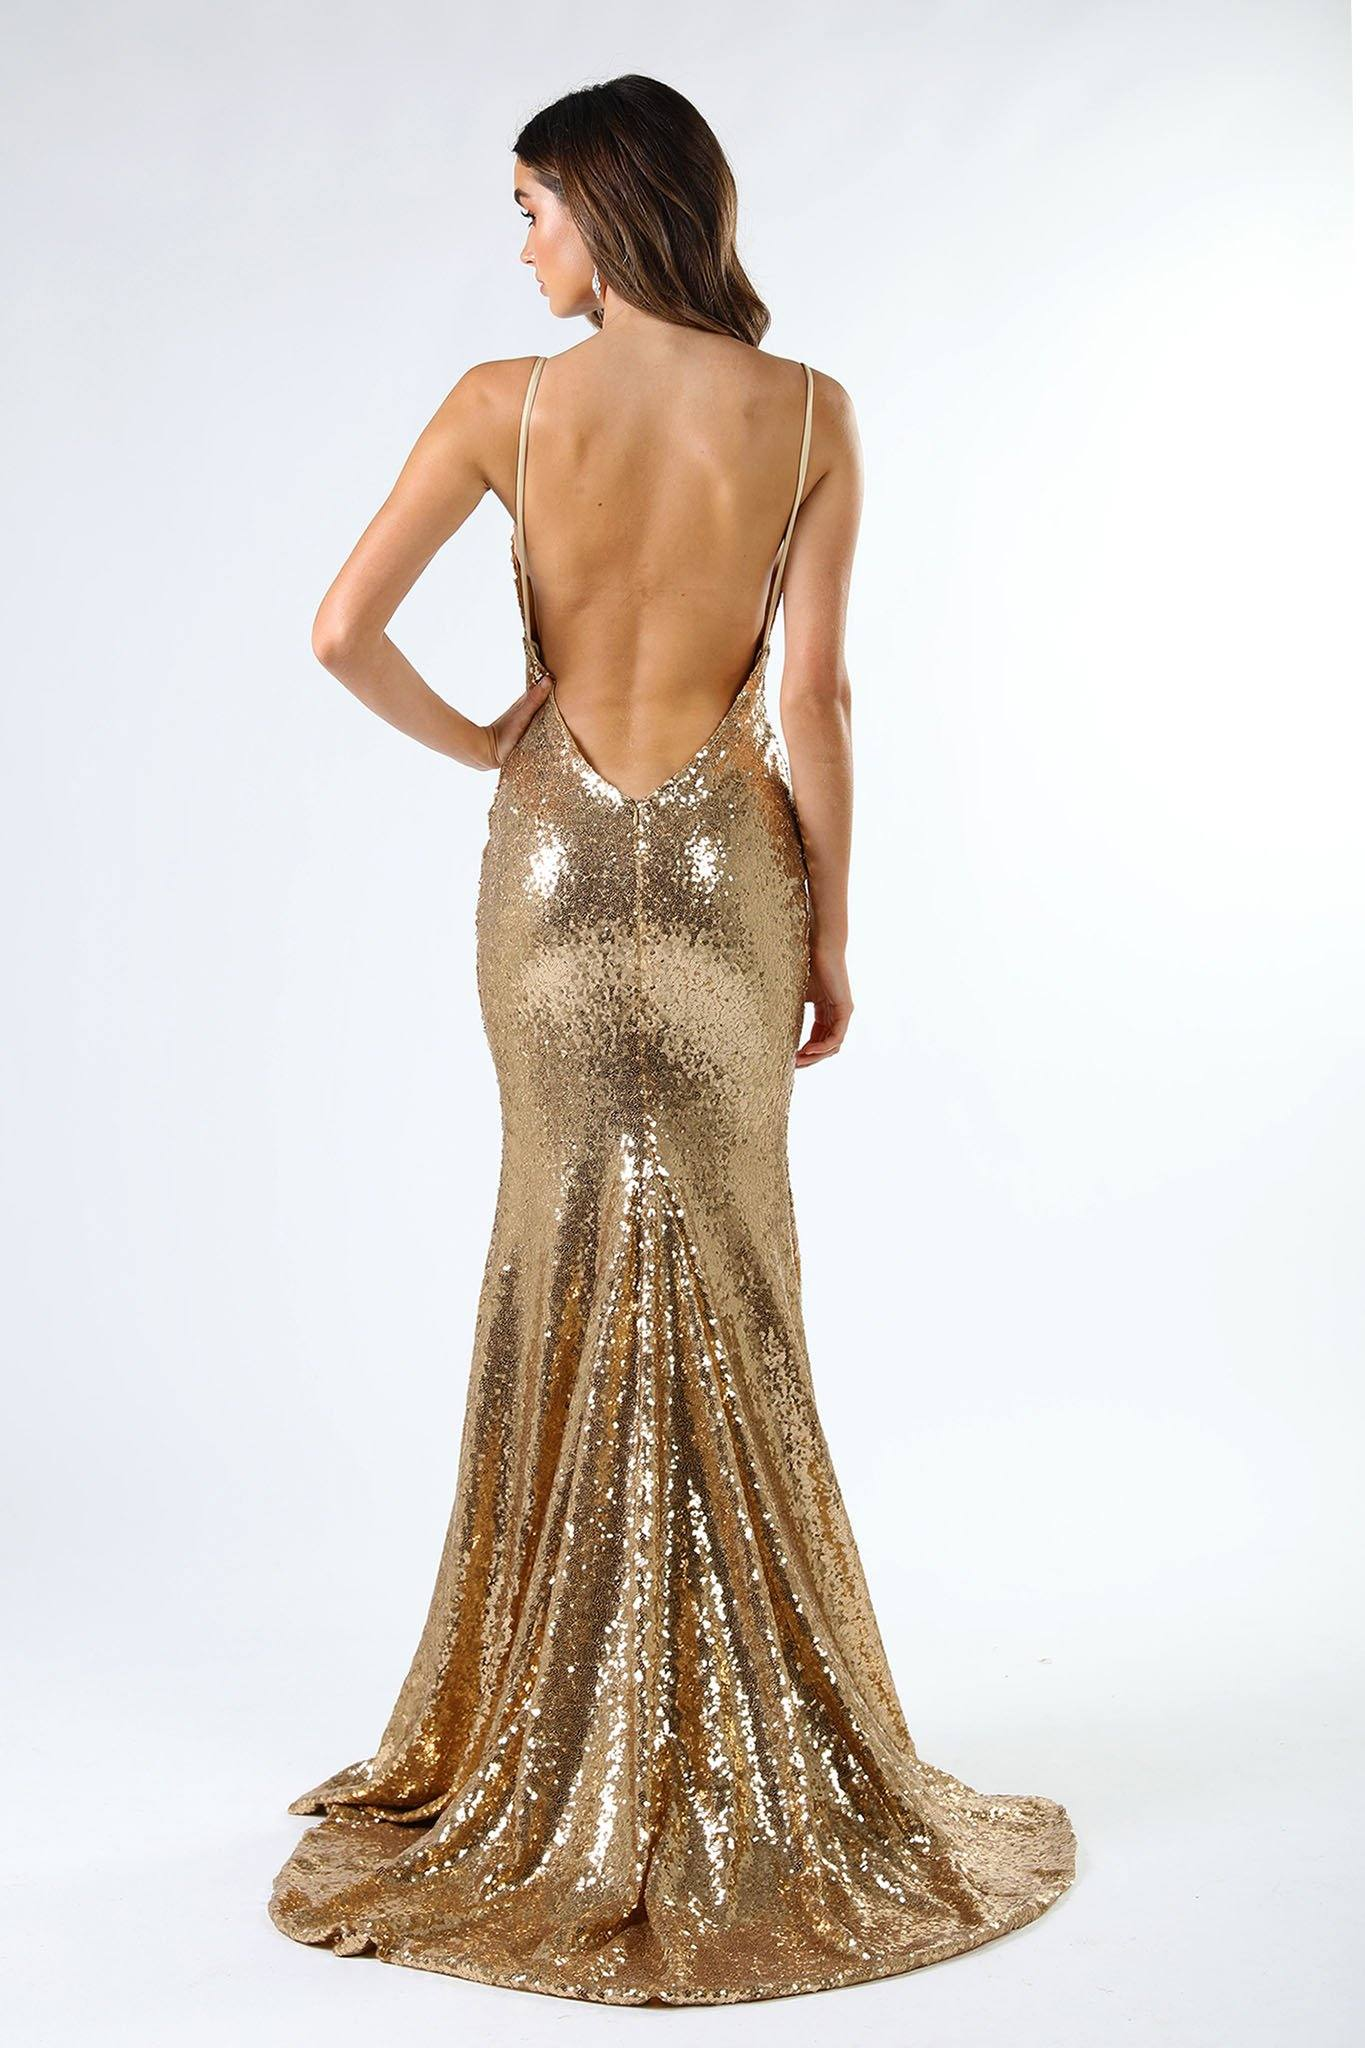 ... V Shaped Backless Design of Gold Sequin Formal Prom Sleeveless Gown  featuring Deep V Neck 260fcb4b7